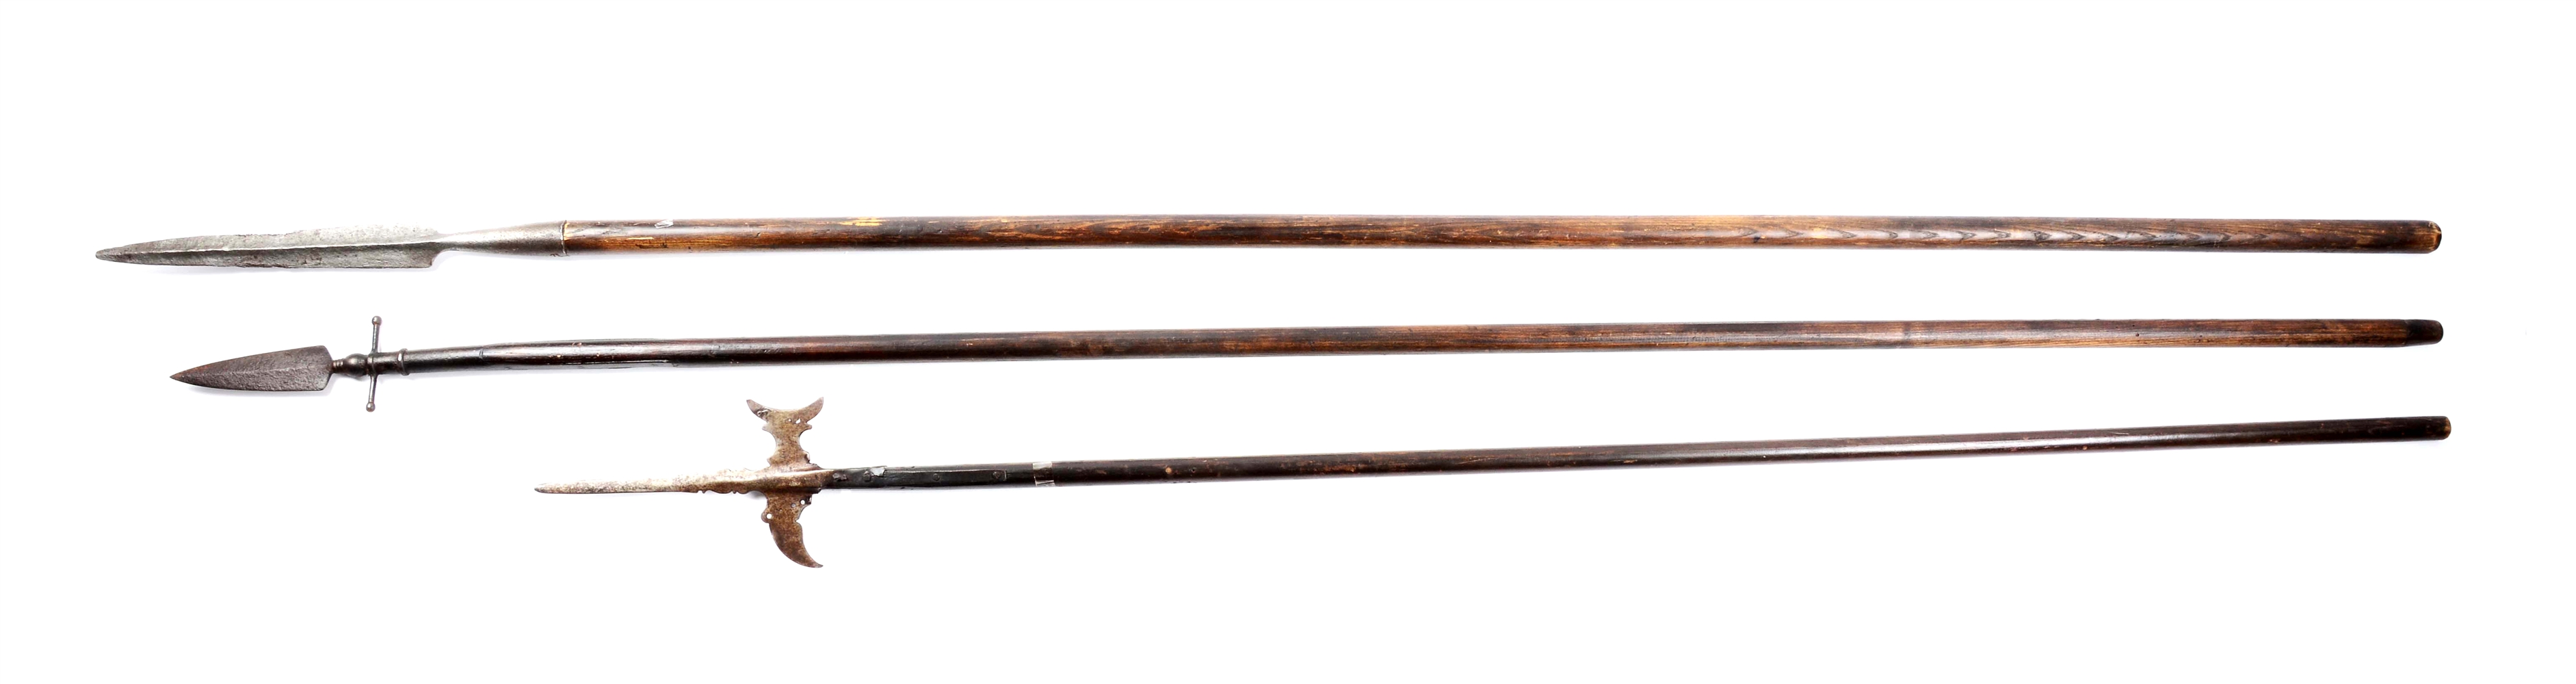 Lot Of 3: 18th Century Polearms.